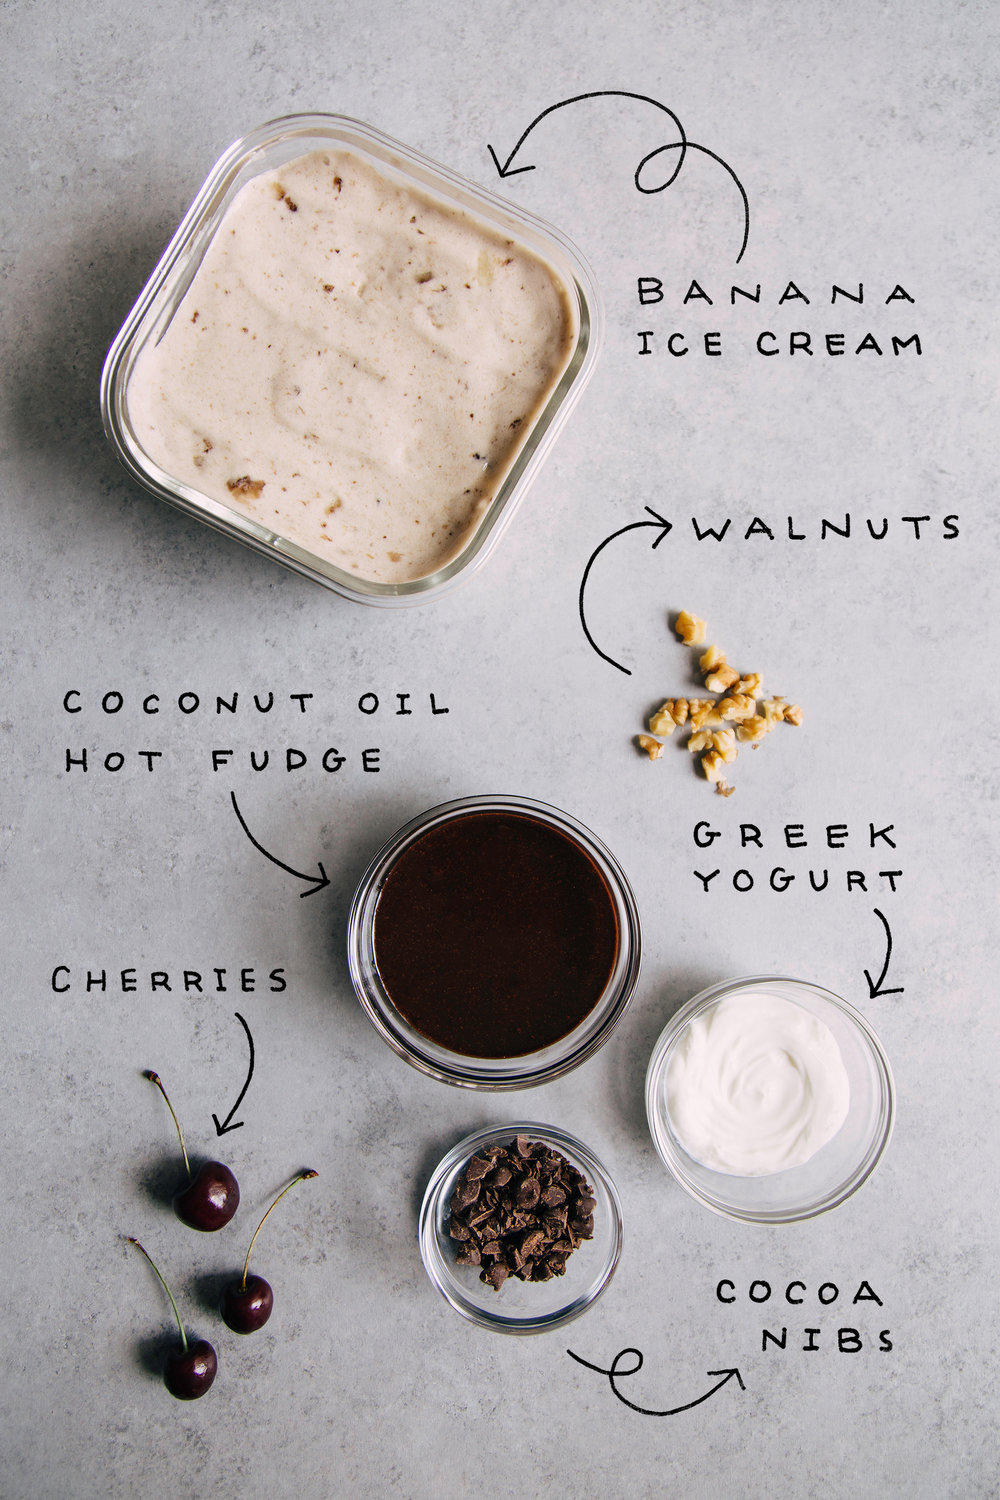 EatMe_HowTo_Healthiest_Sundae_Ingredients.jpg